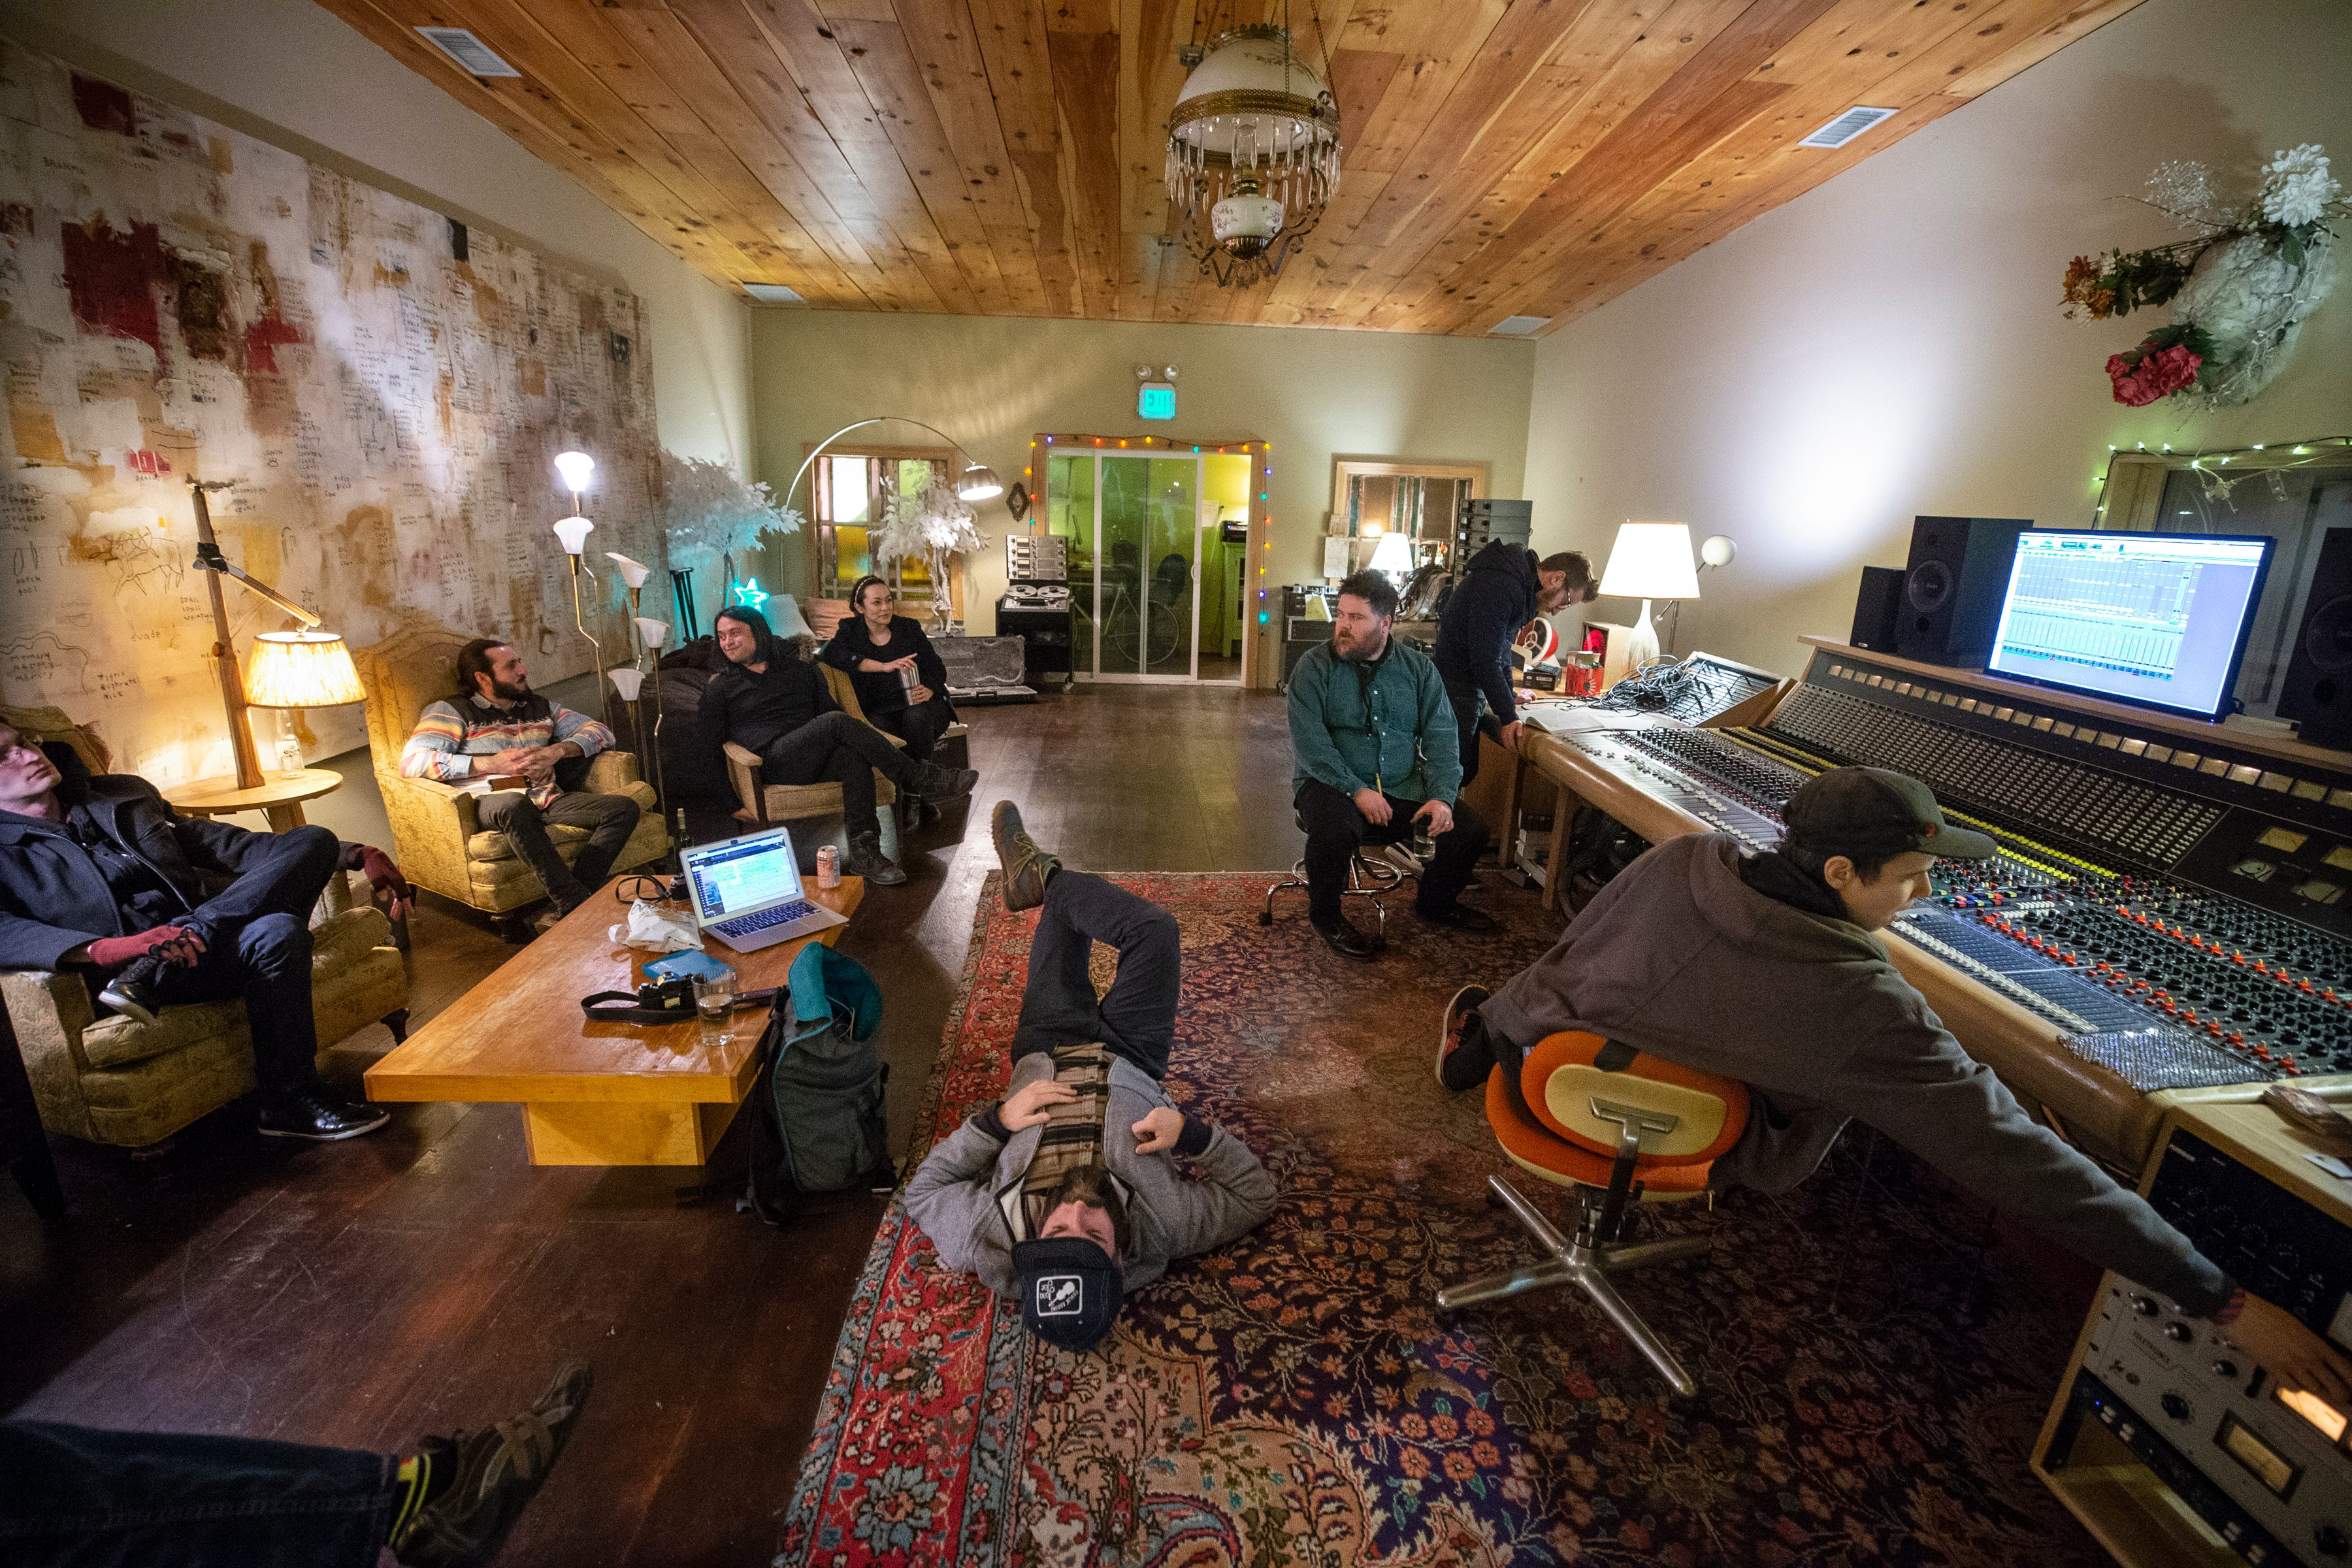 12:54 AM  Anne Gauthier, right, head engineer at La La Land Studio made an adjustment while members and friends of the band Drew Miller & Curiokey Club listened to the playback of a recording on Jan. 19, 2020